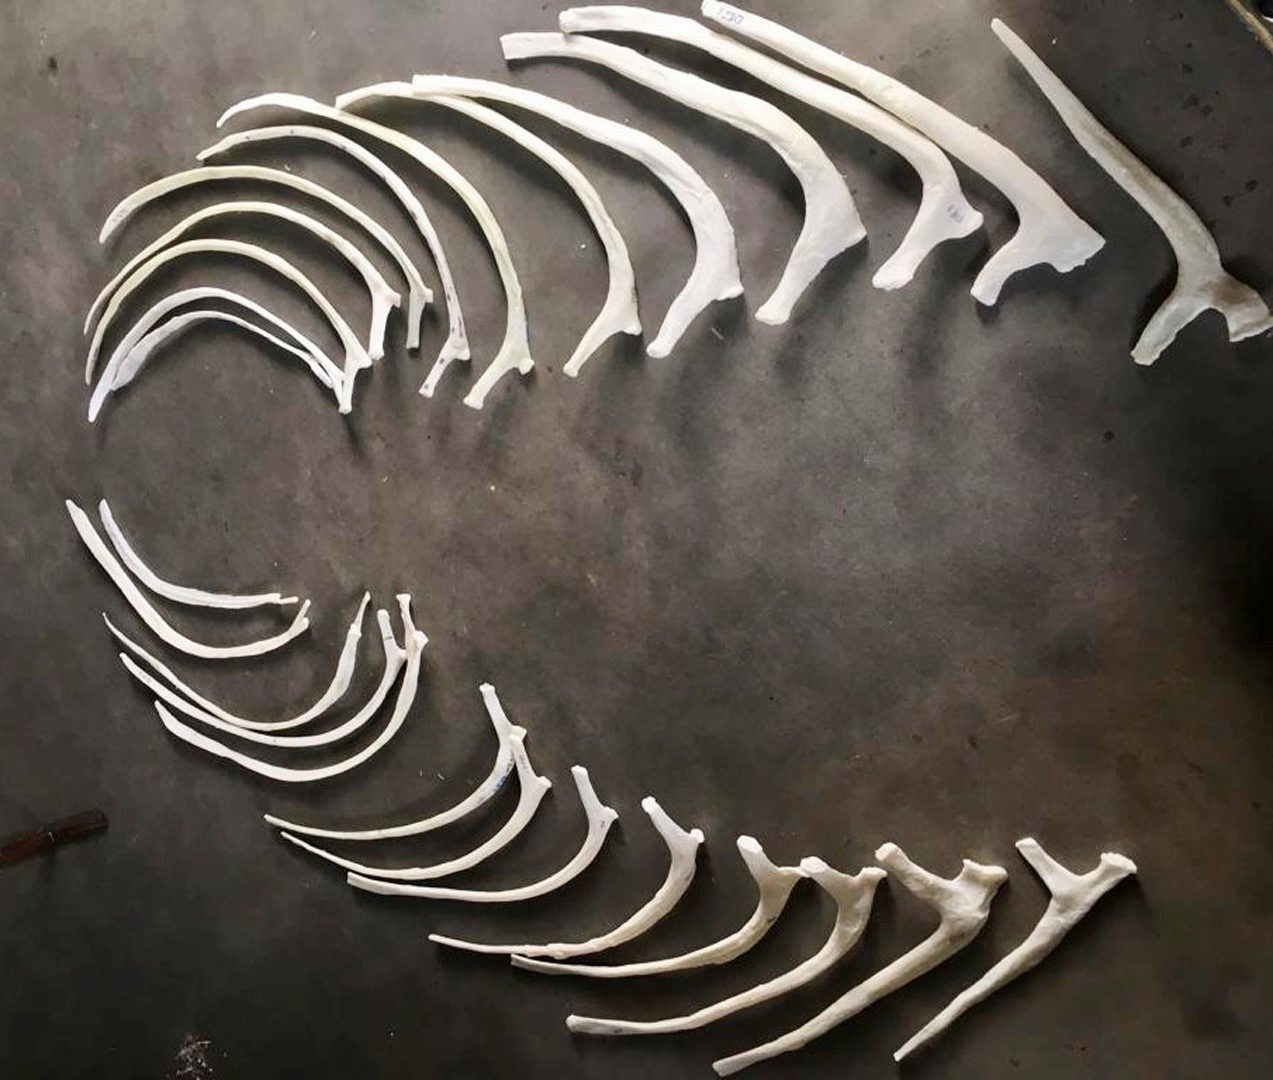 The 26 3D printed ribs of the Triceratops. Picture taken 3 meters above the ground.